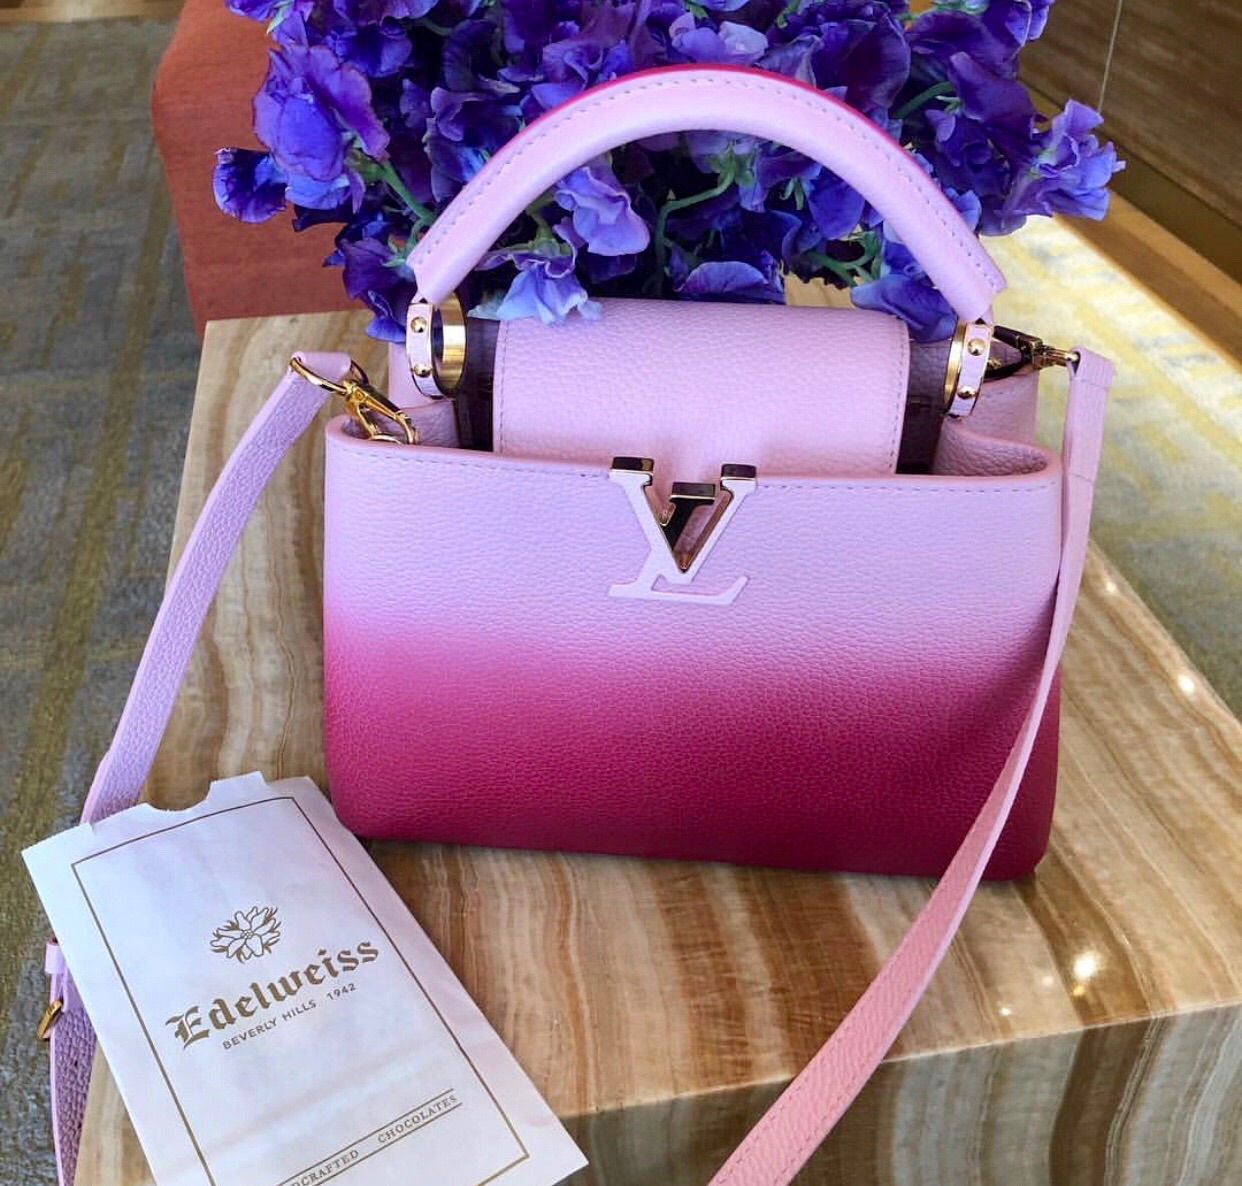 Louis Vuitton, bag and pink